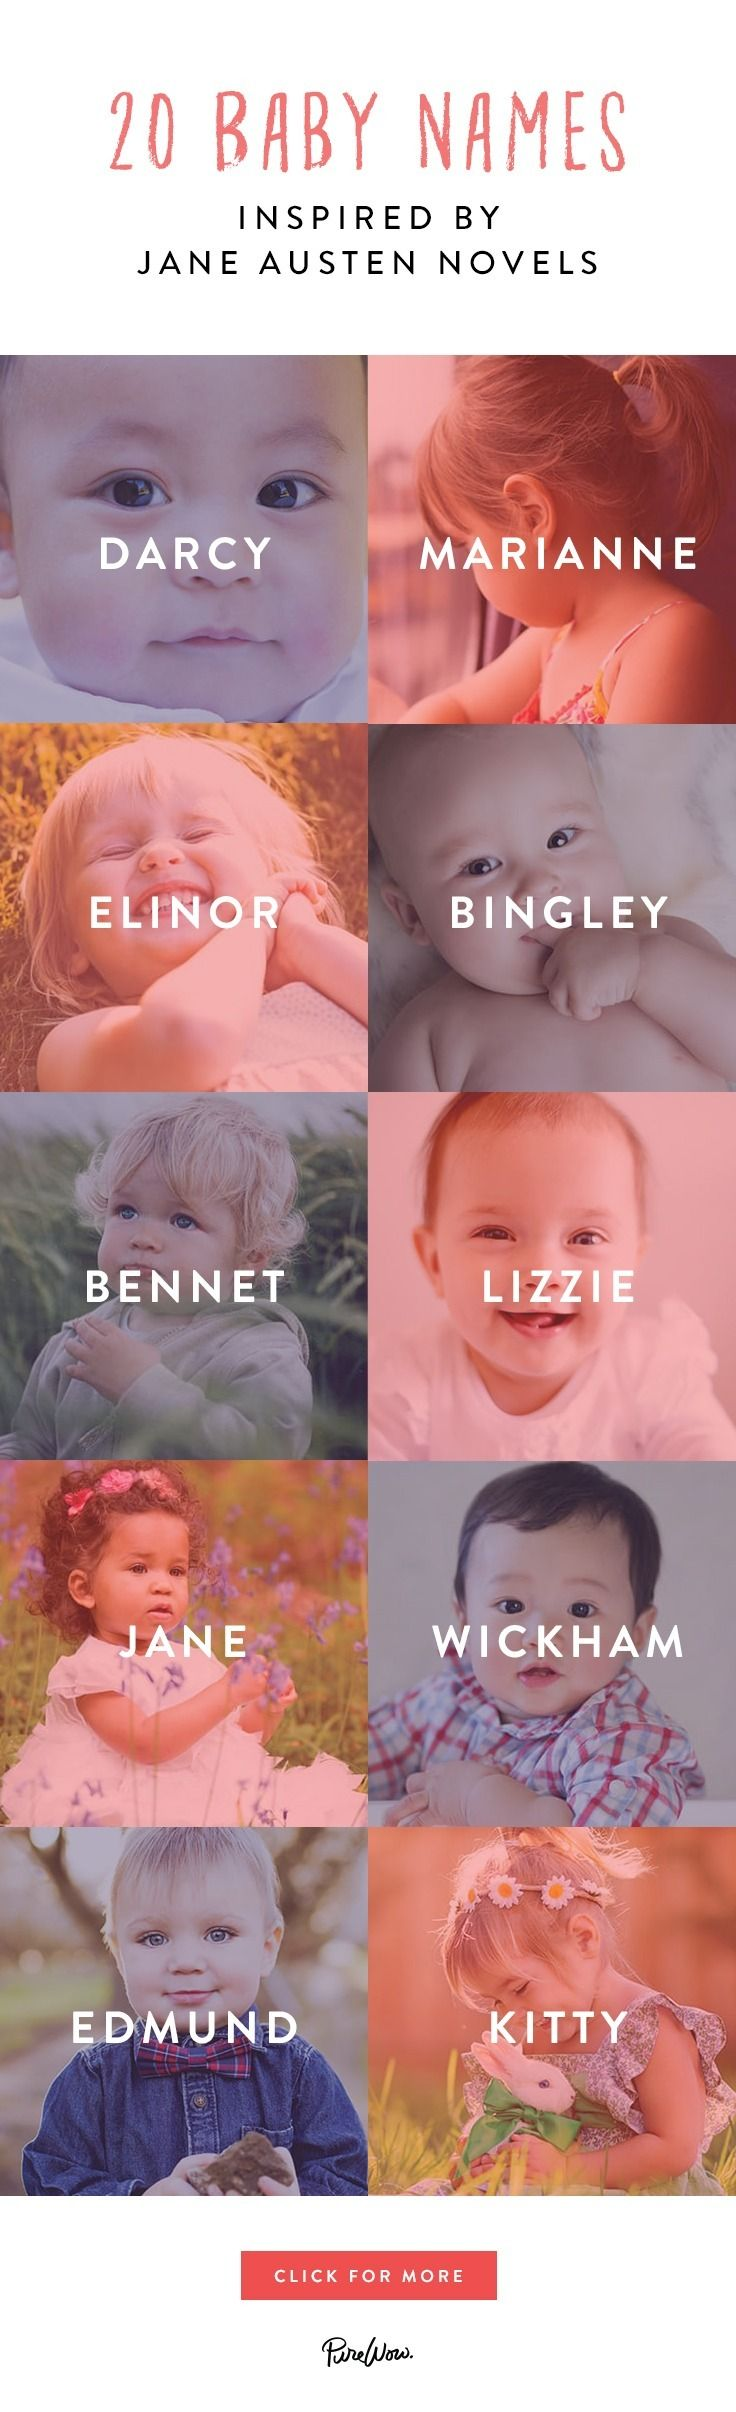 We adore her novels, her characters, her witty writing and her love of…well, love. Yep, we even revere them enough to bestow our offspring with one of her timeless monikers. Here are 20 baby names for the Jane Austen-obsessed.